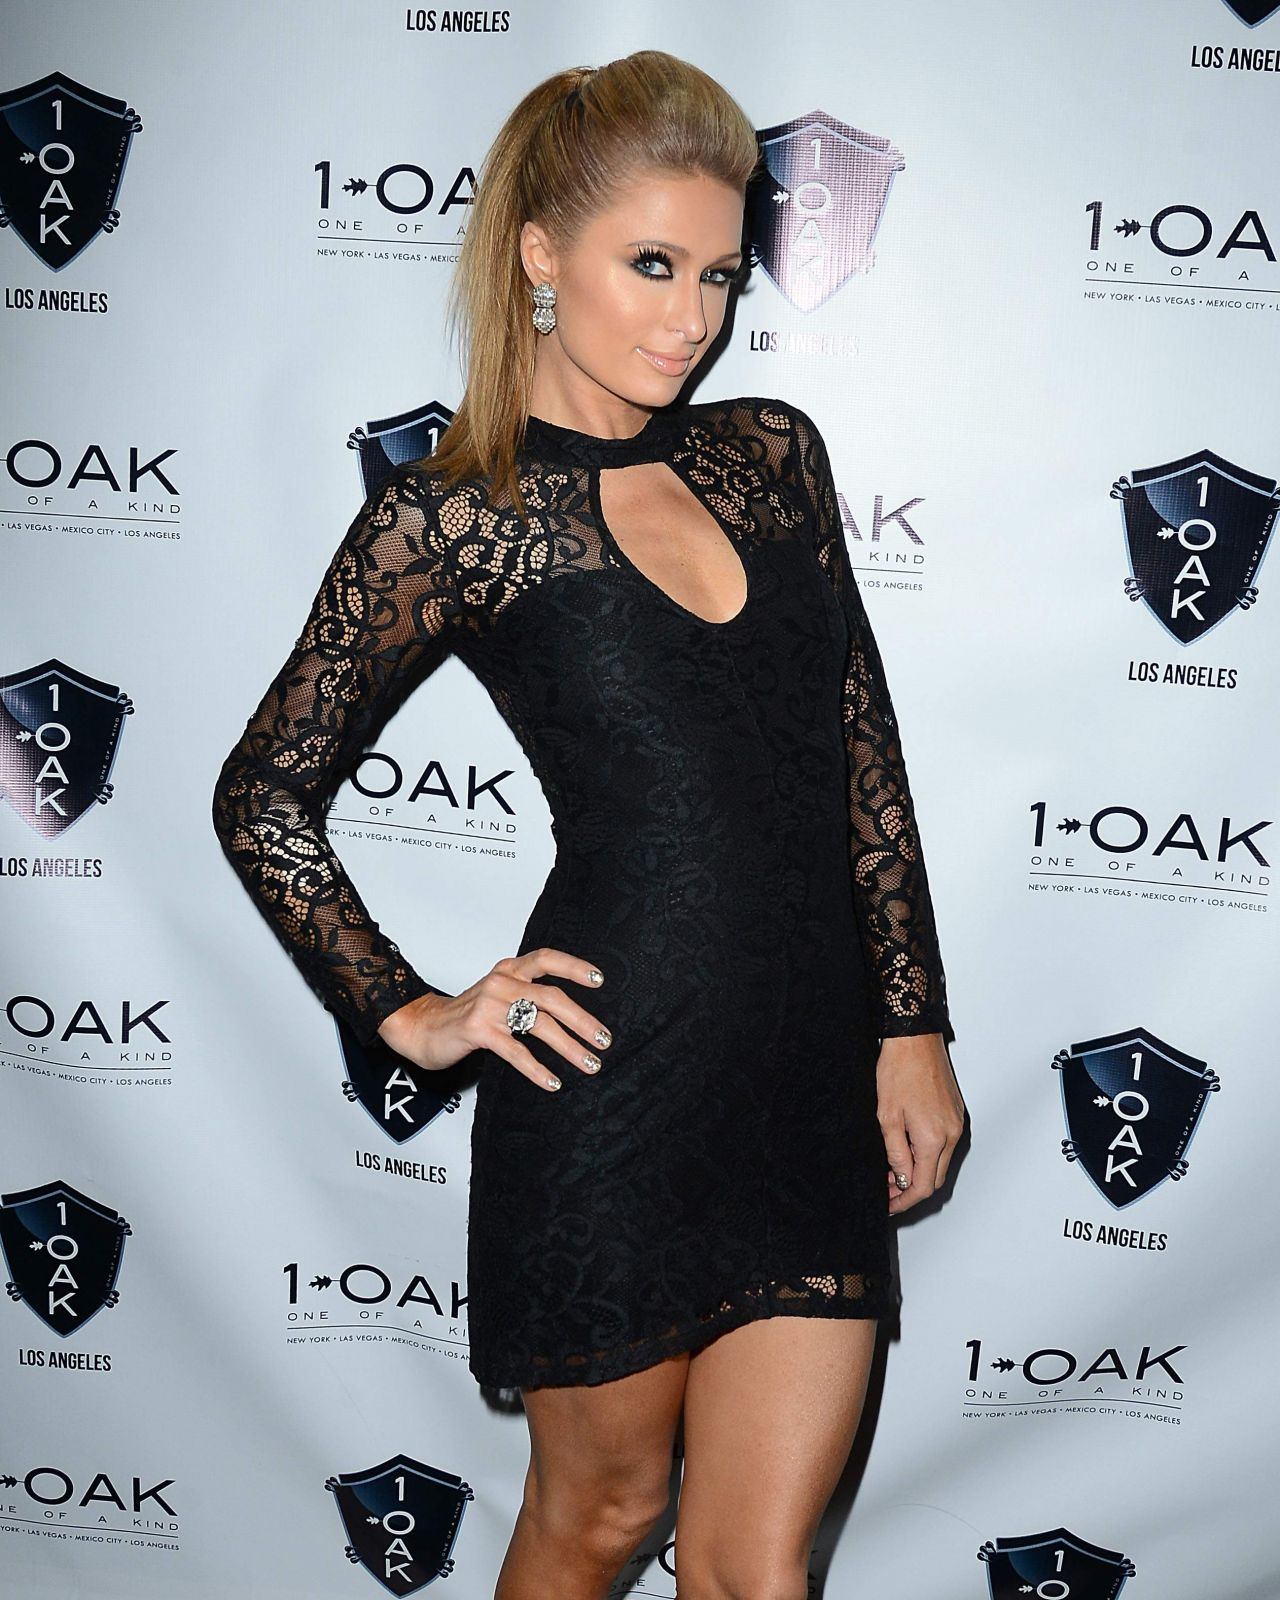 Paris Hilton at 1 OAK nightclub in West Hollywood - April 2014